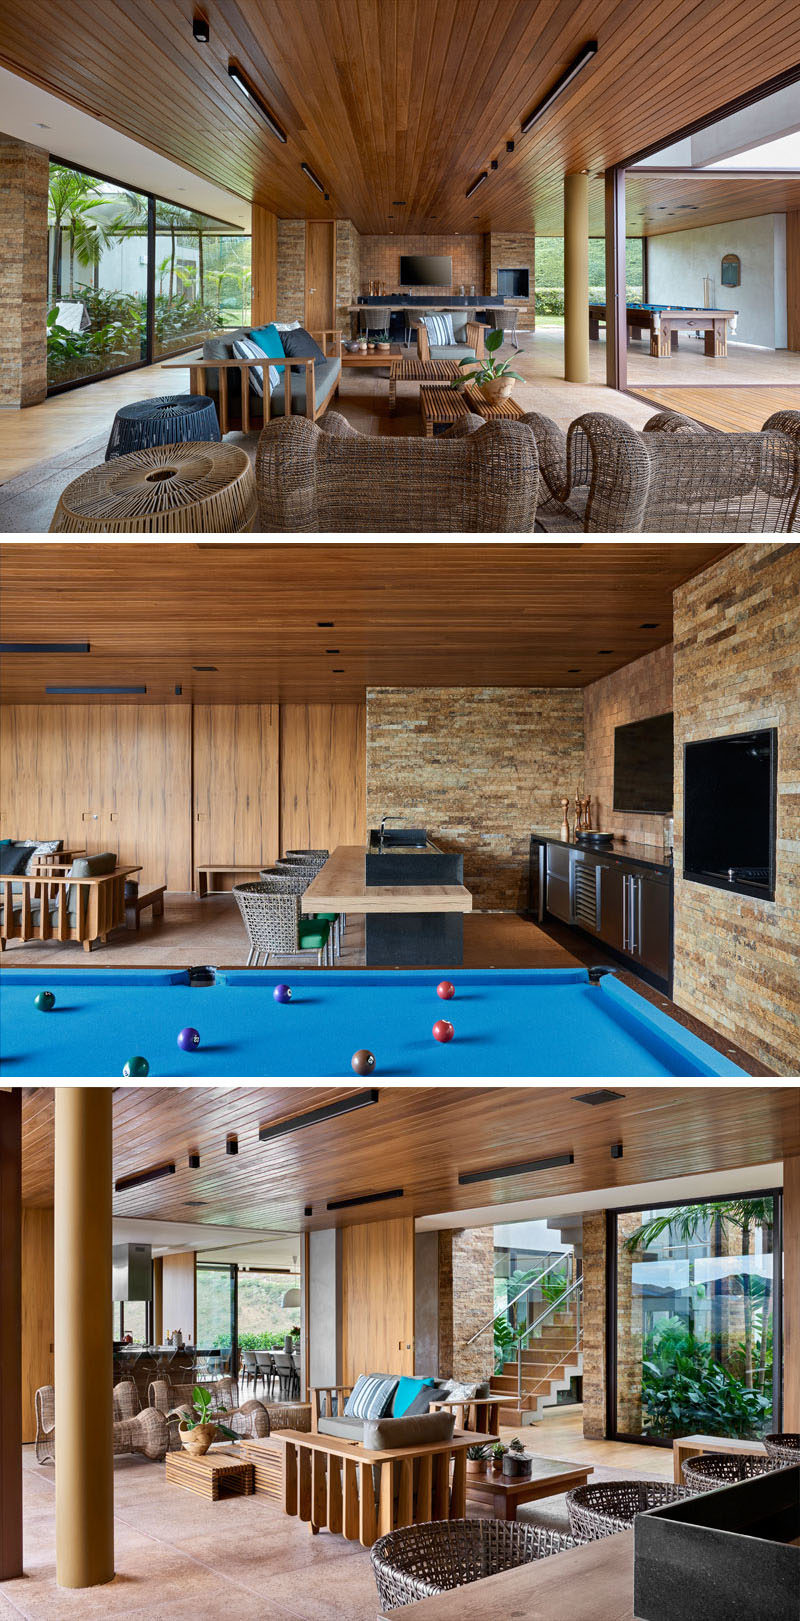 This modern house has an entertaining area with a lounge, bar and pool table, that opens up to a deck and swimming pool. #EntertainingArea #InteriorDesign